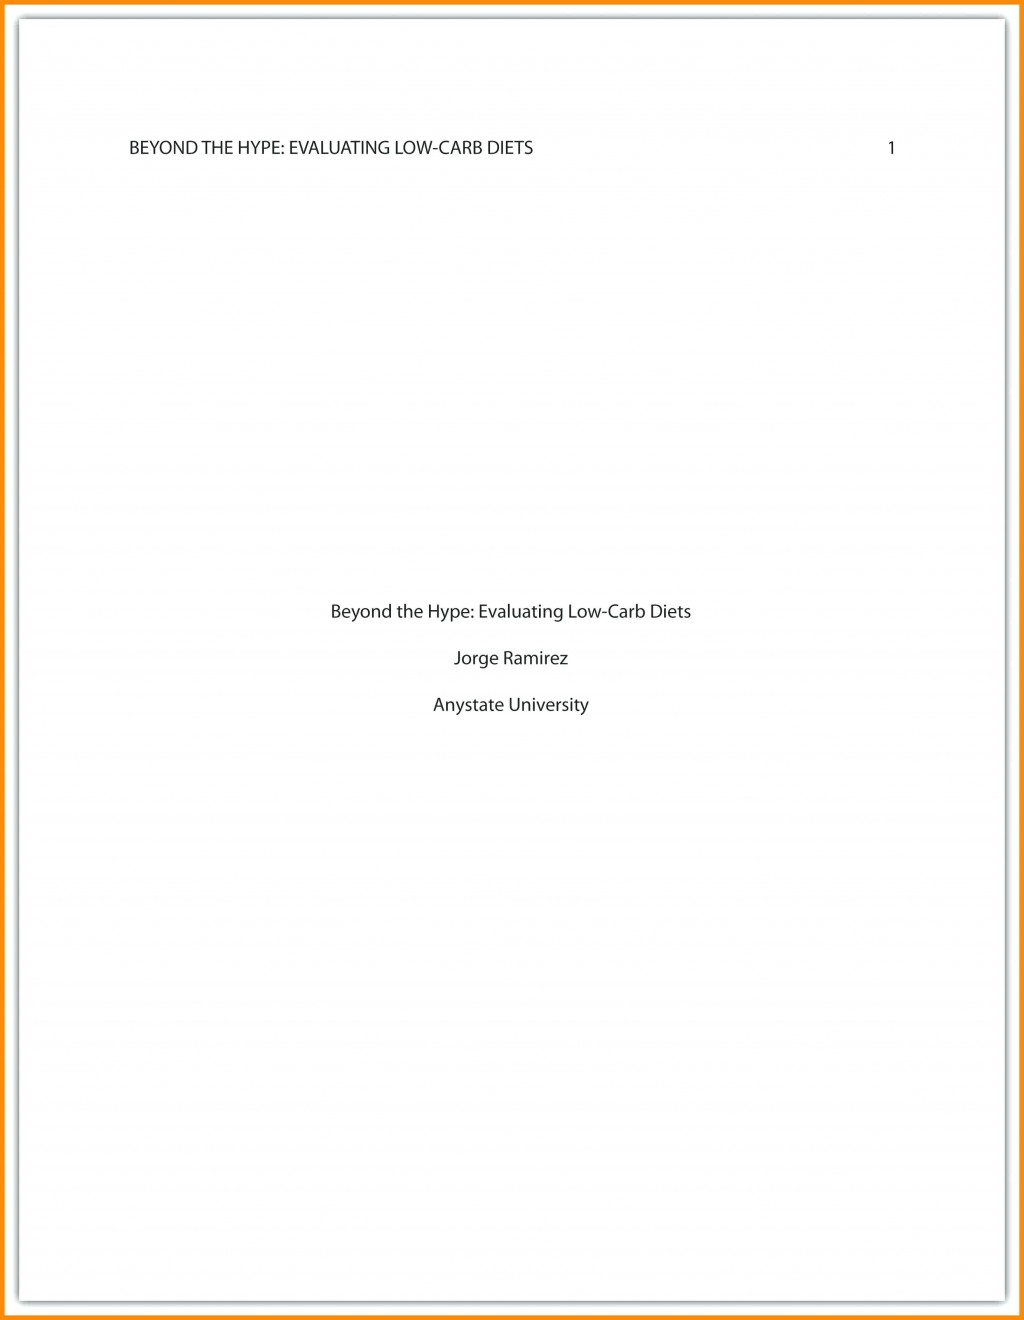 002 Asa Cover Page Template Style Essay Marvelous Example Apa Research Proposal Sample Large